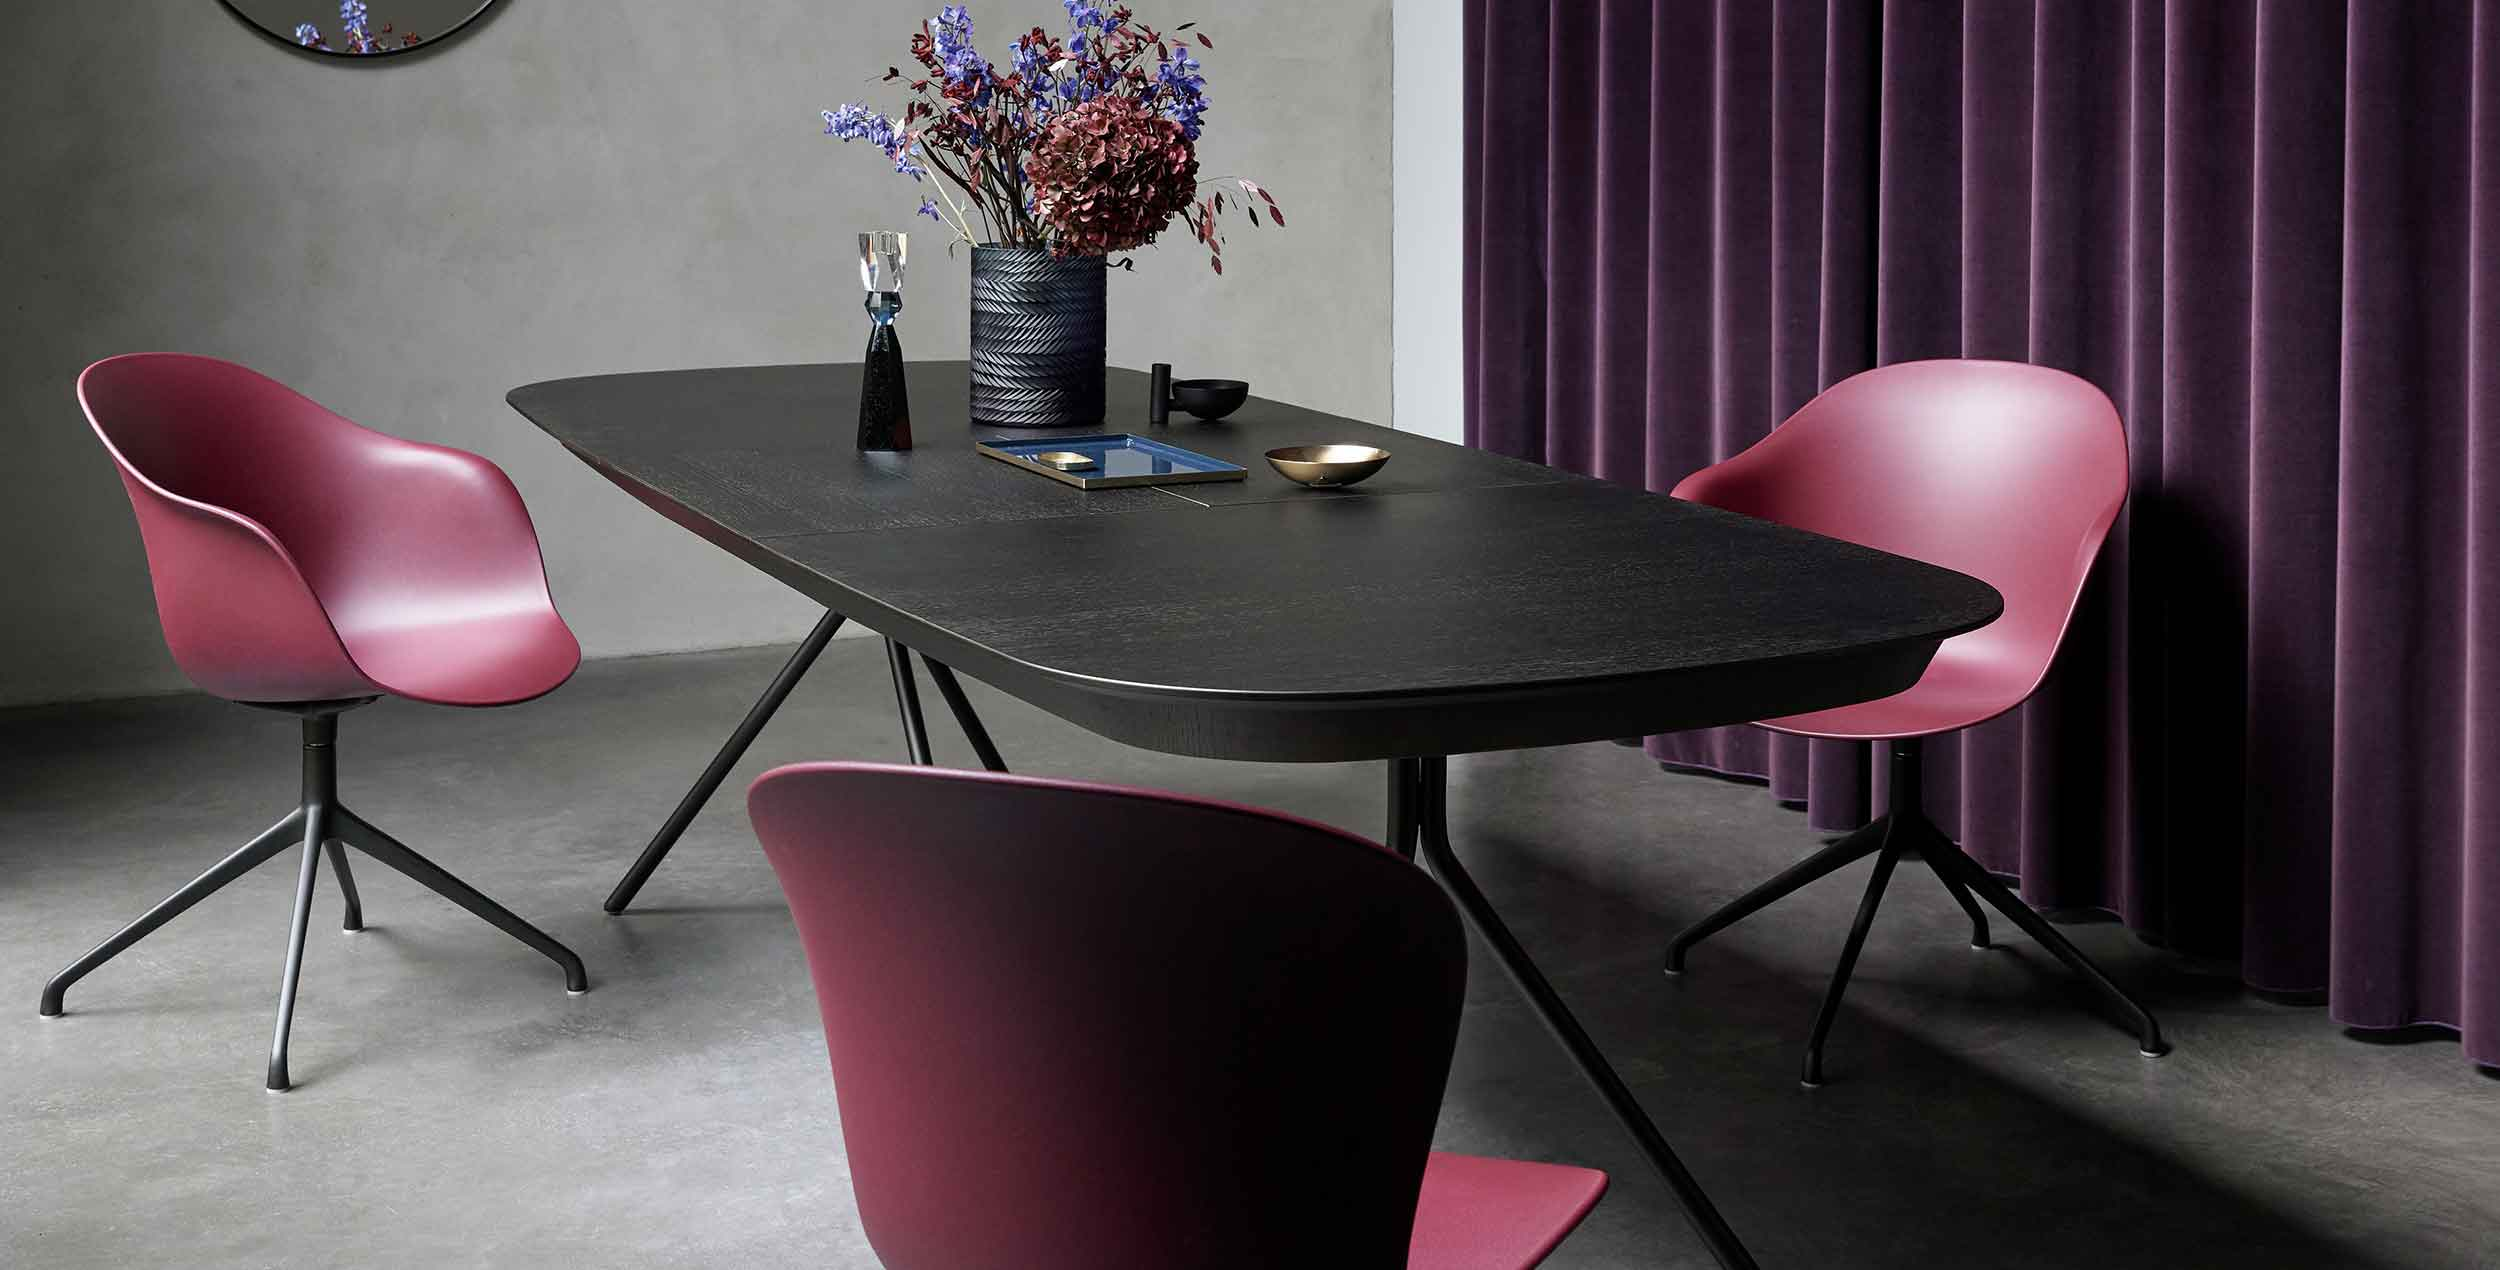 Rustic red adelaide chairs and dining table